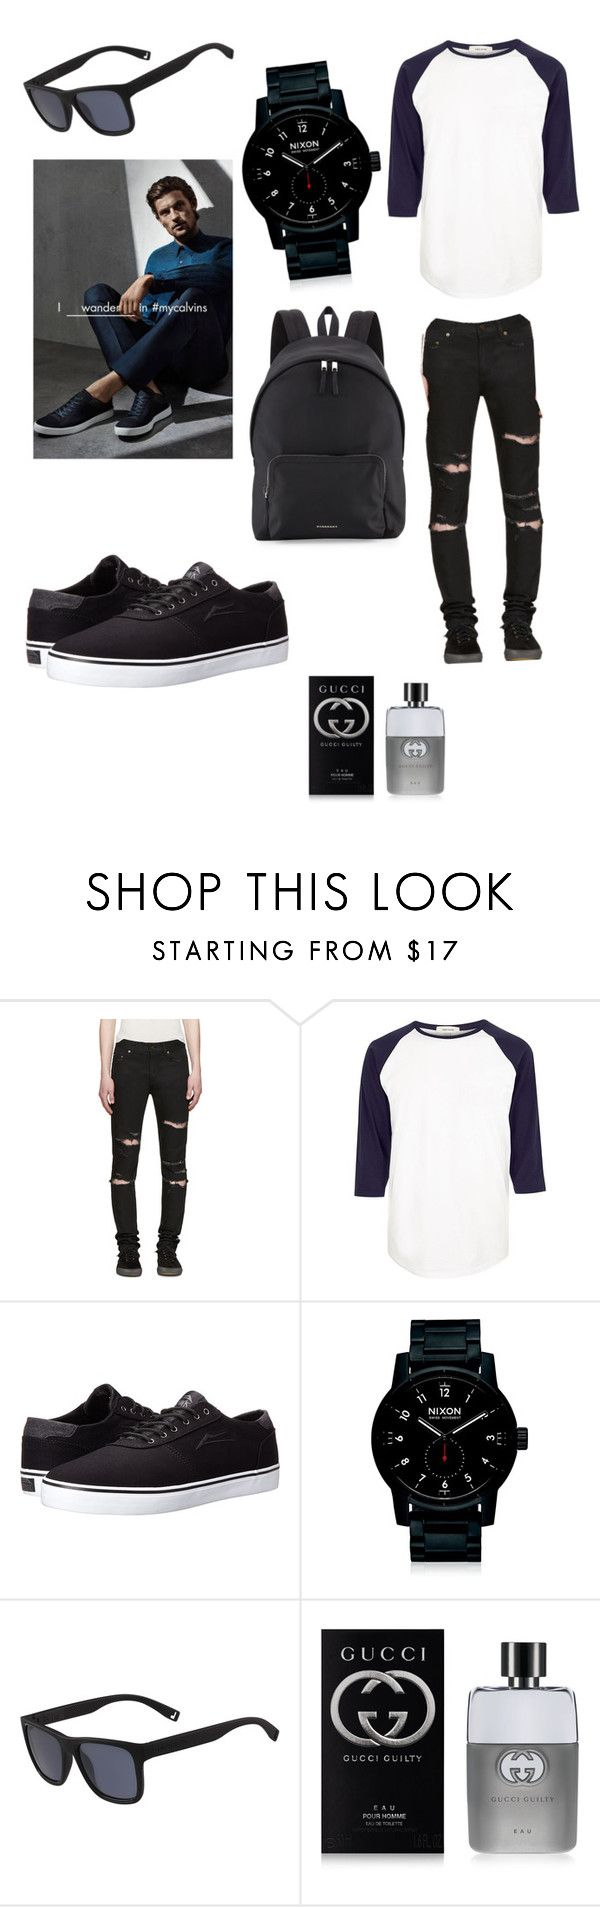 """Untitled #61"" by benhemmings on Polyvore featuring Yves Saint Laurent, River Island, Lakai, Nixon, Lacoste, Gucci, Burberry, Calvin Klein, men's fashion and menswear"